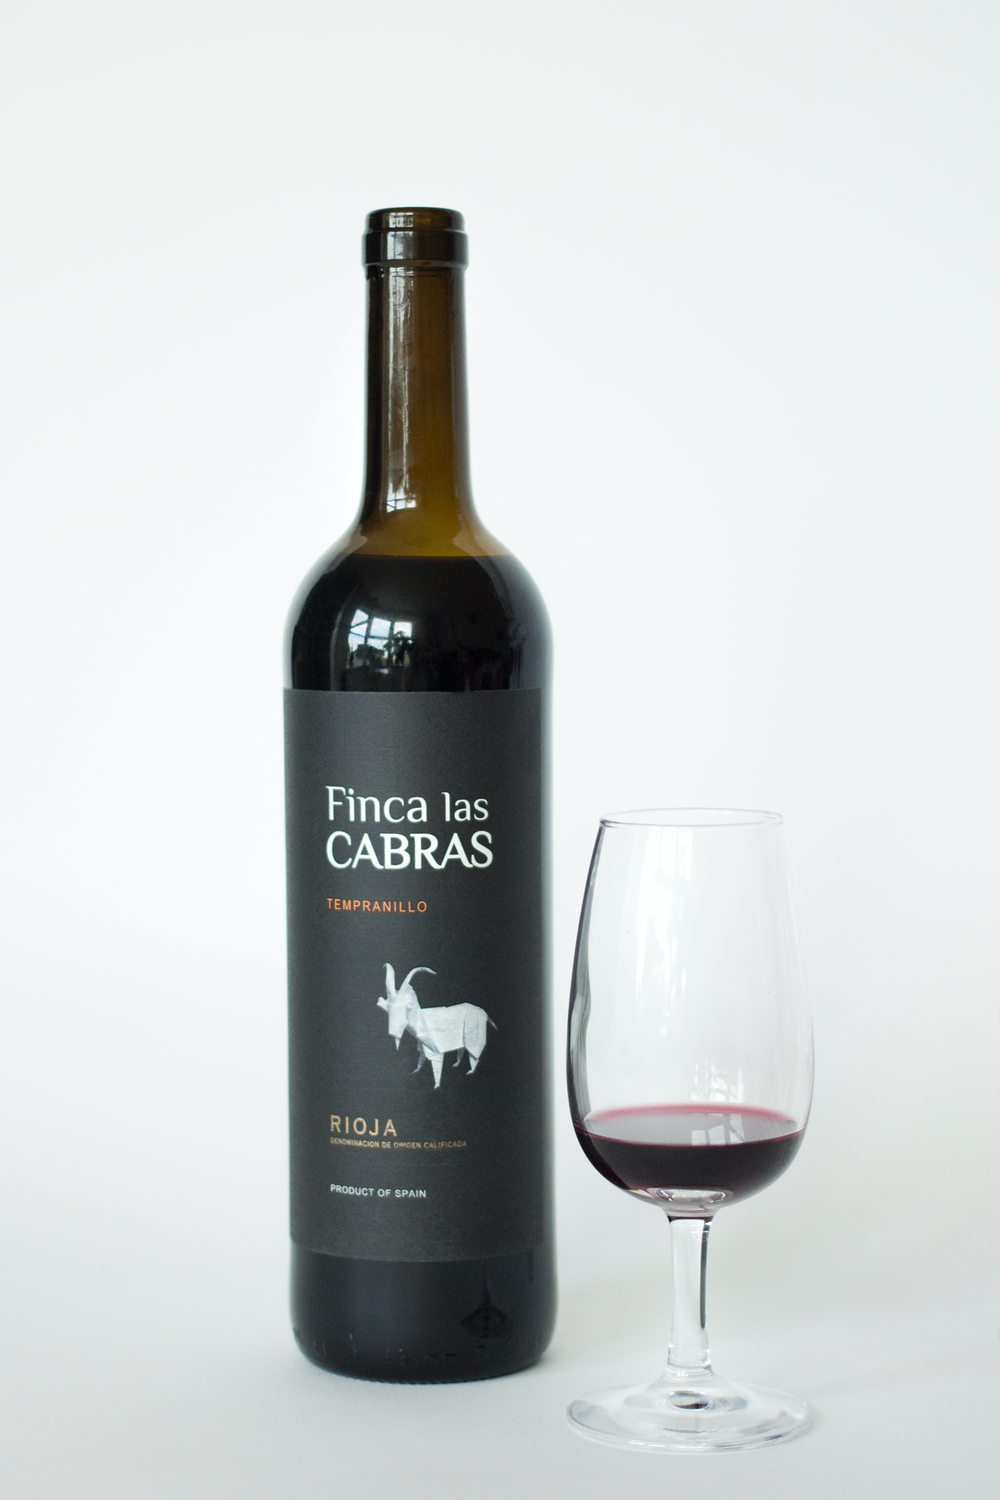 wine-review-of-Fincas-Las-Cabras-Tempranillo-Rioja-by-Bottle-Bitches.png